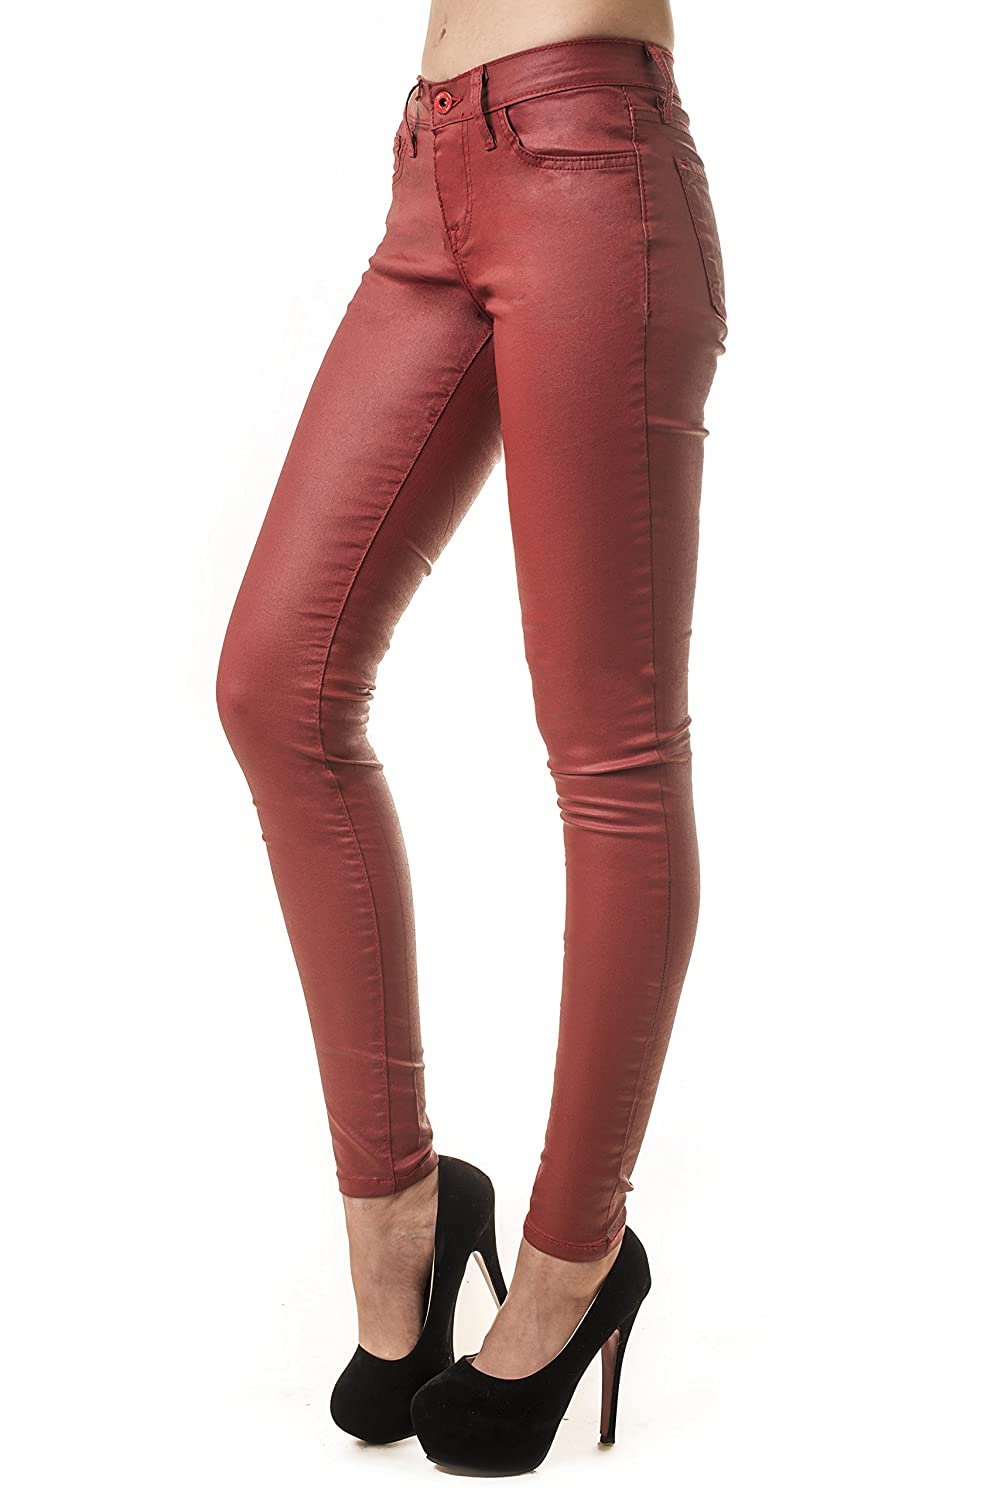 ICONOFLASH Women's Faux Leather Wax Coating Skinny Jeans